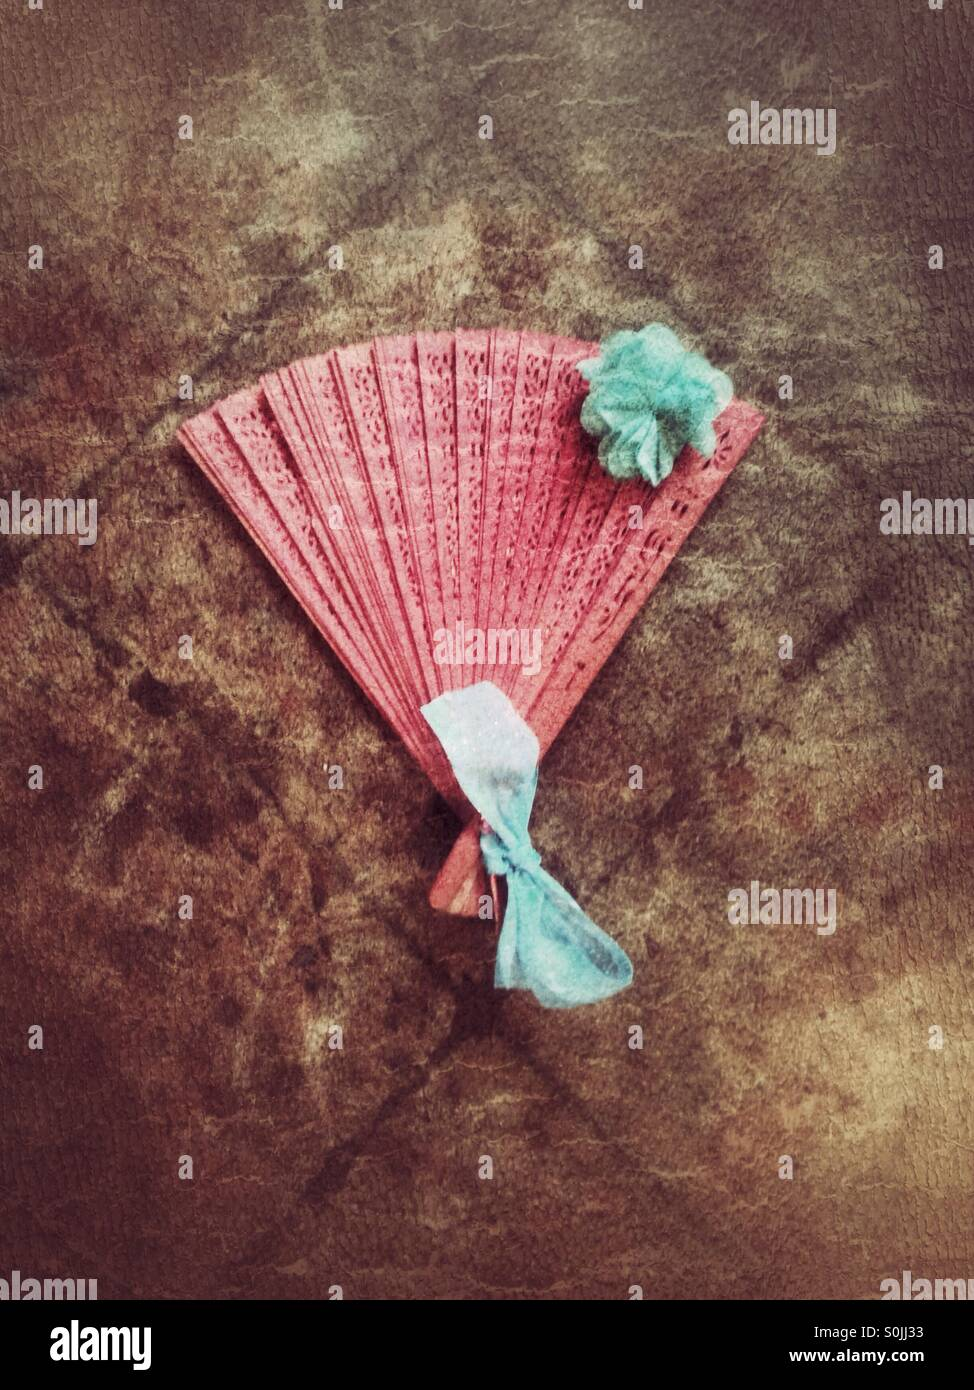 Red fan on the floor. - Stock Image